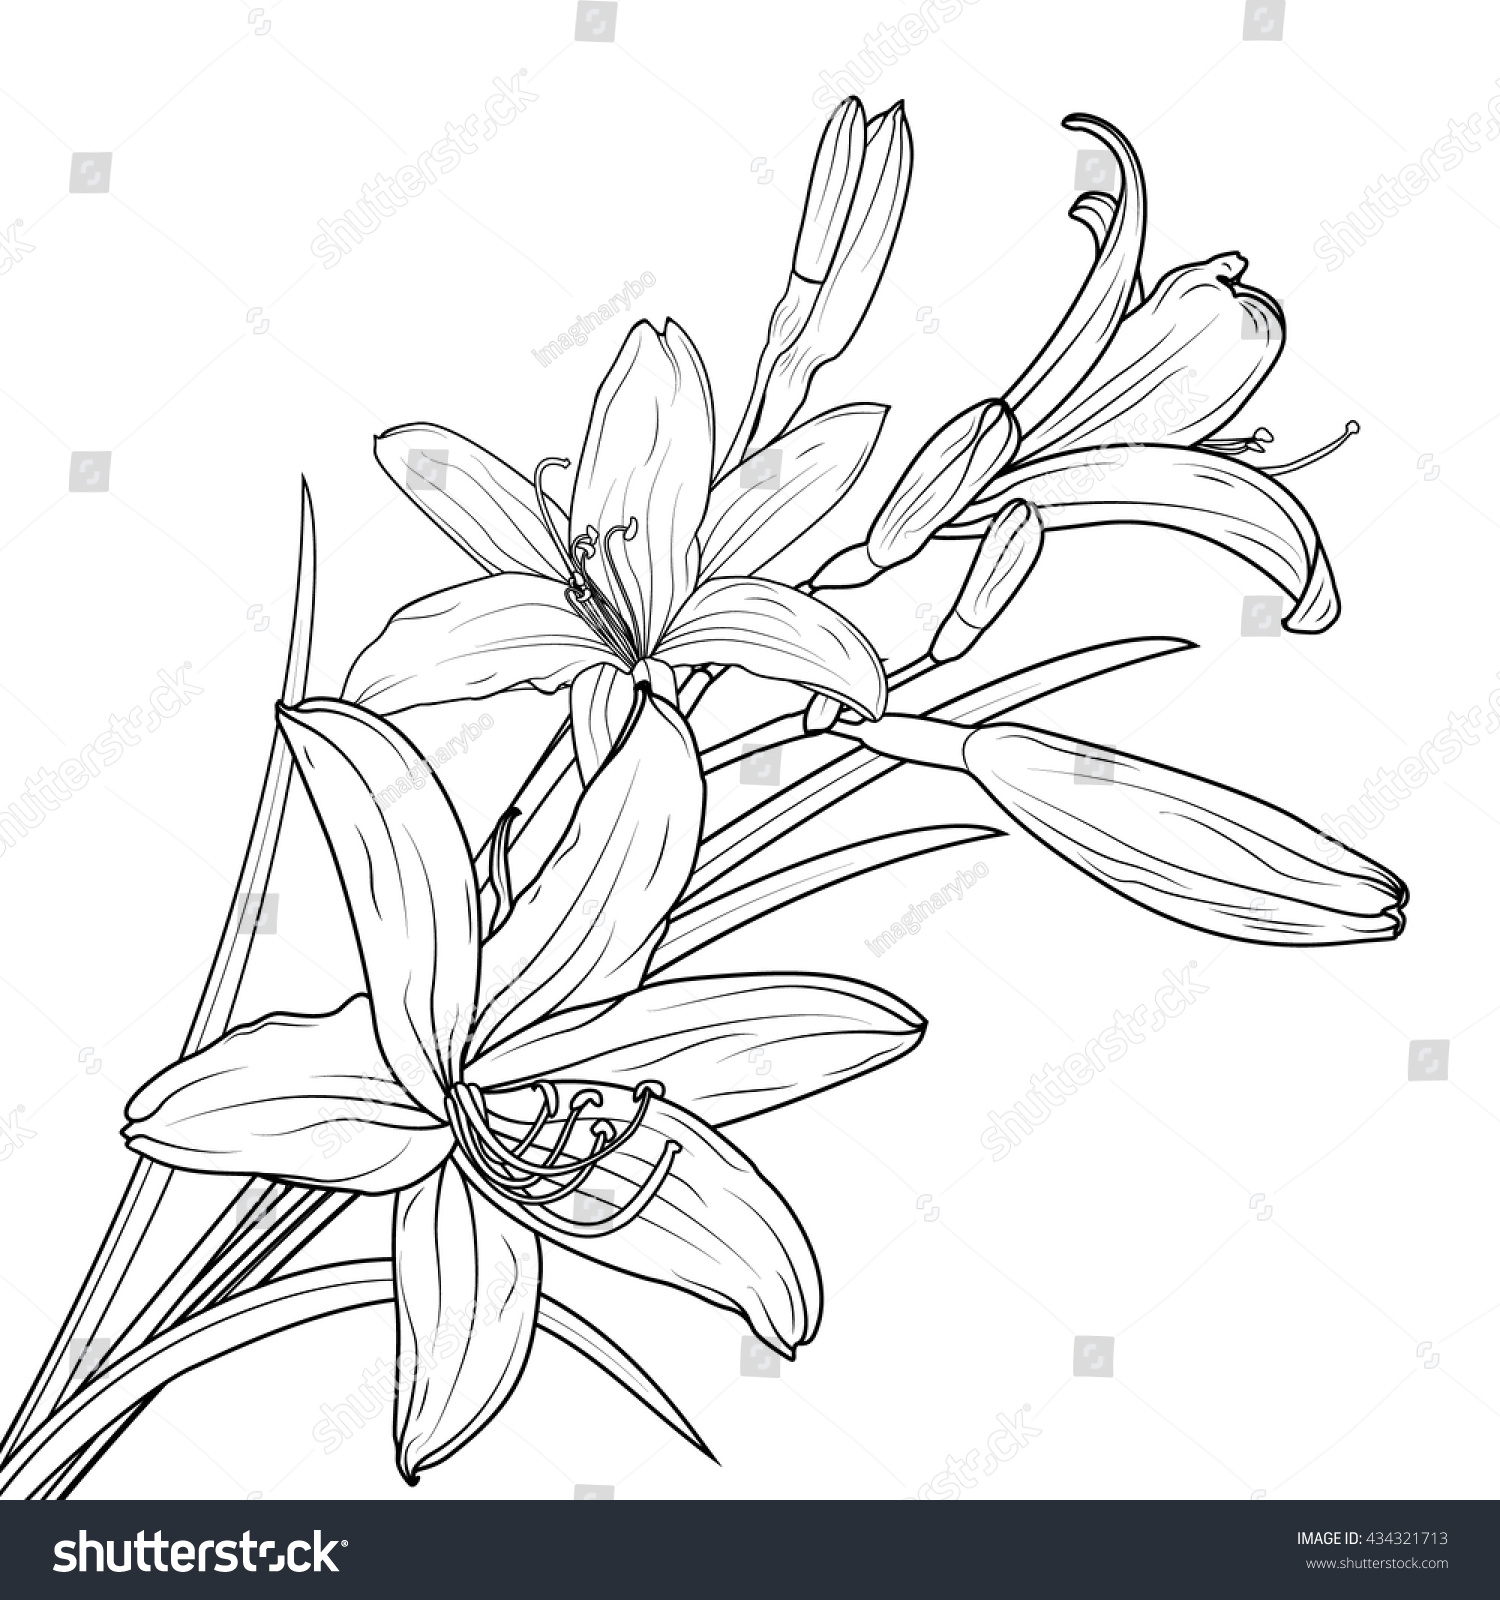 Royalty Free Isolated Lily Flowers Bouquet Blooming 434321713